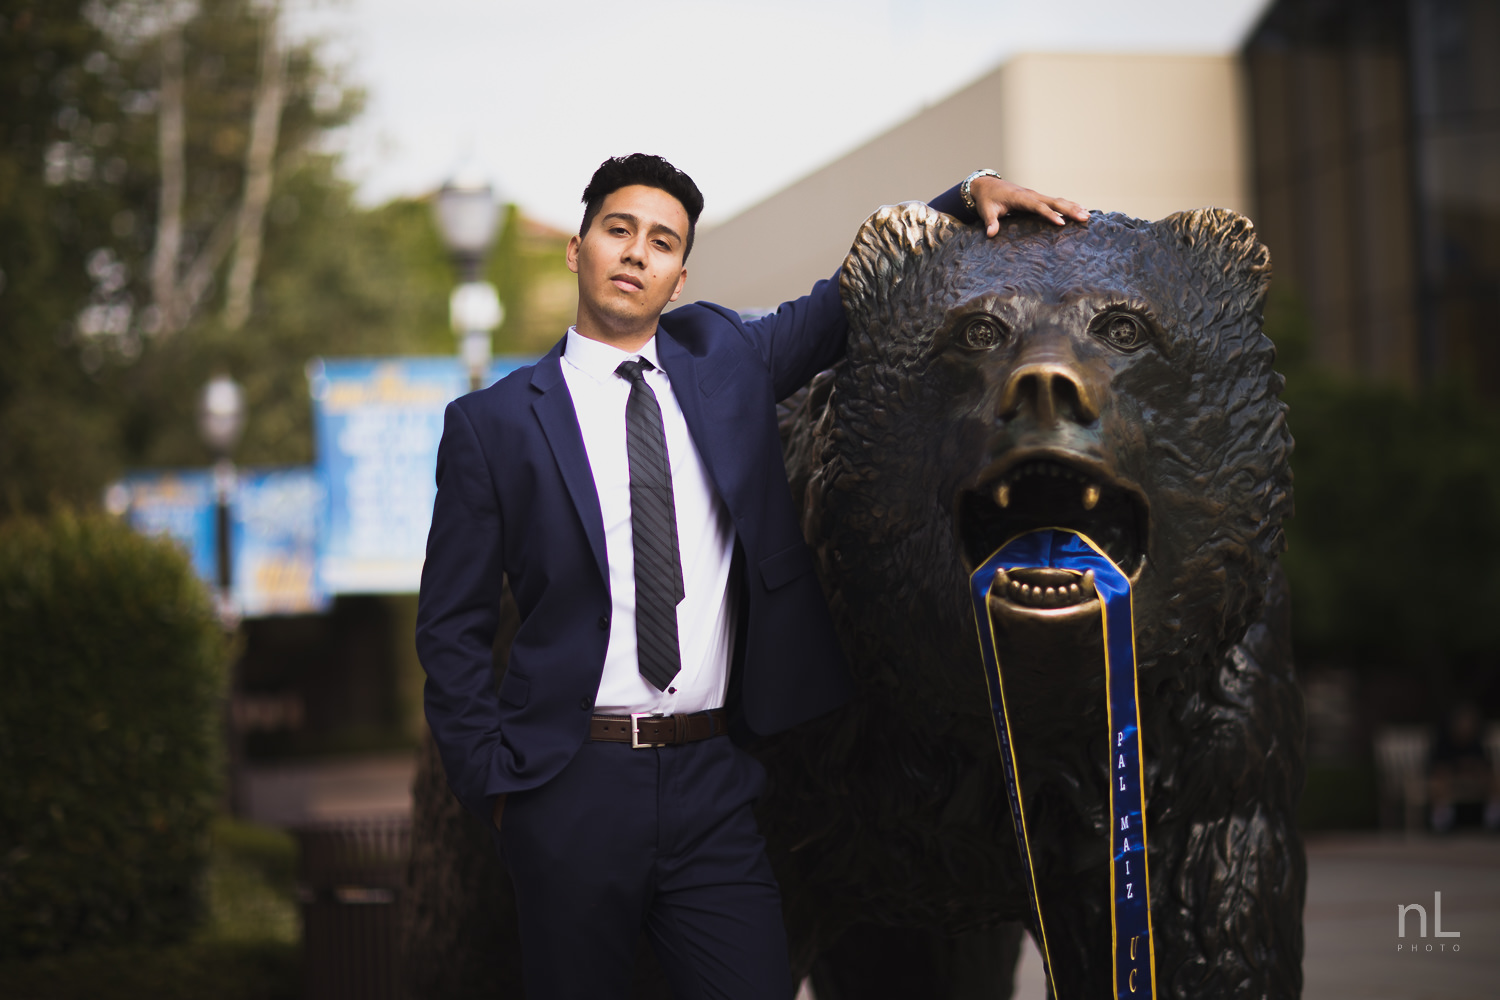 UCLA Class of 2019 graduate wearing suit and graduation sash at Bruin Bear.